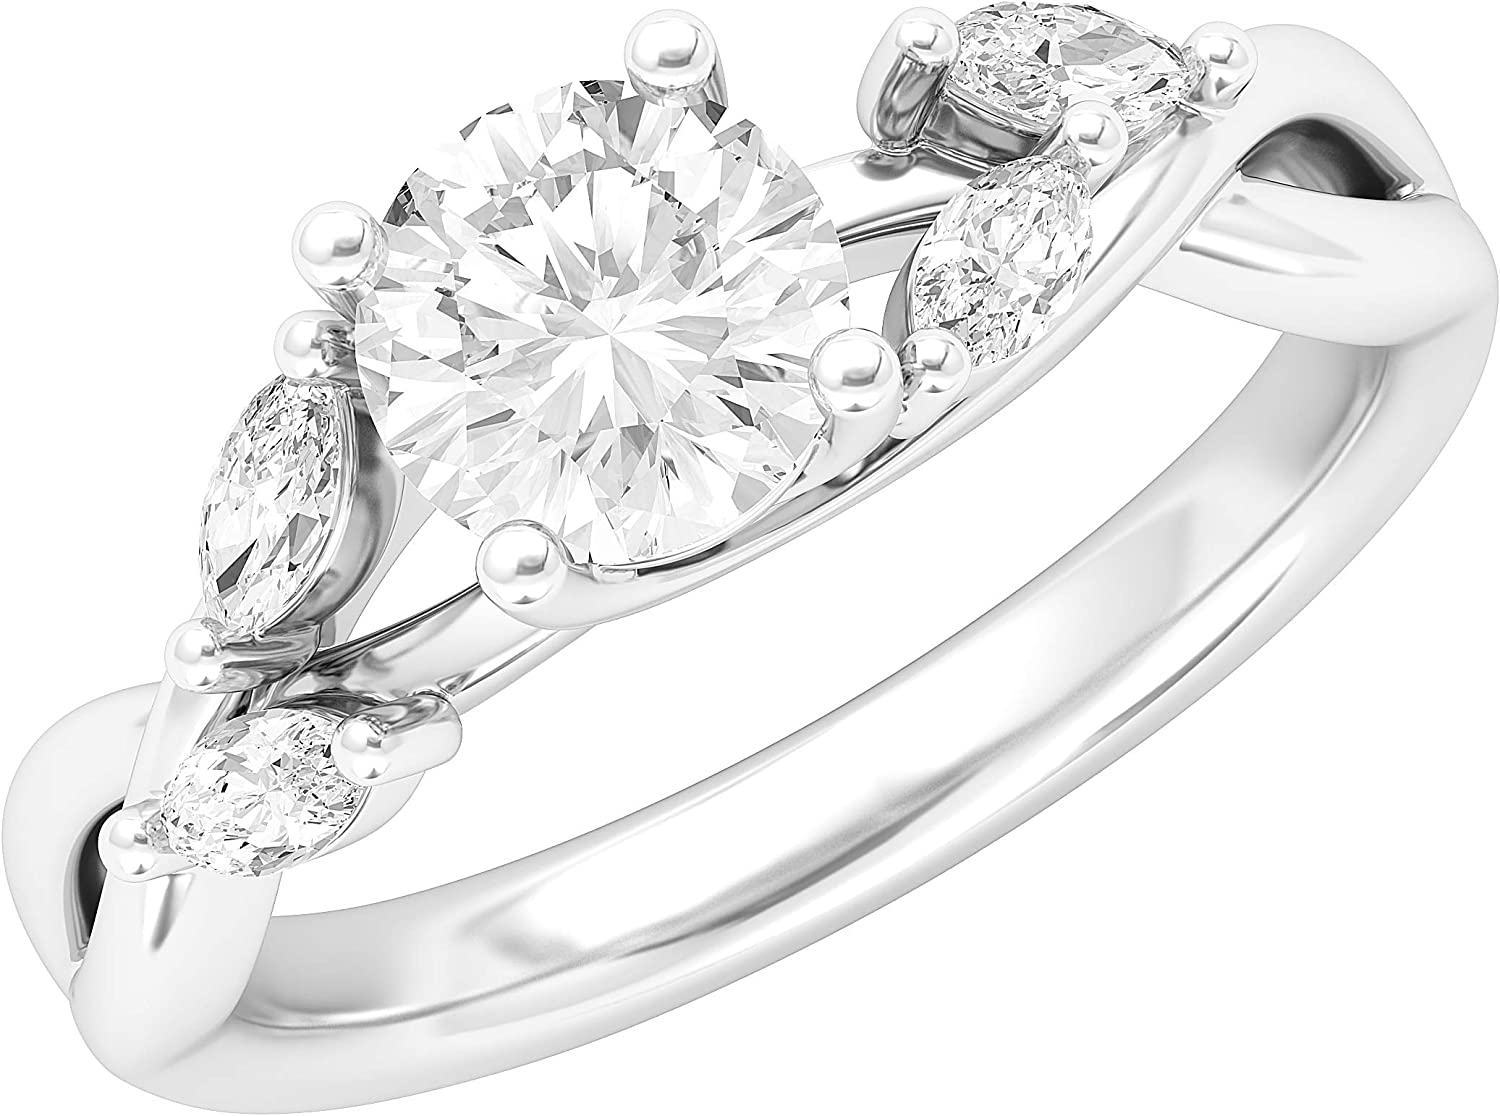 Sterling Silver Twisted Willow Vine 1.0CT Simulated Diamond Engagement Ring Promise Bridal Ring with Marquise